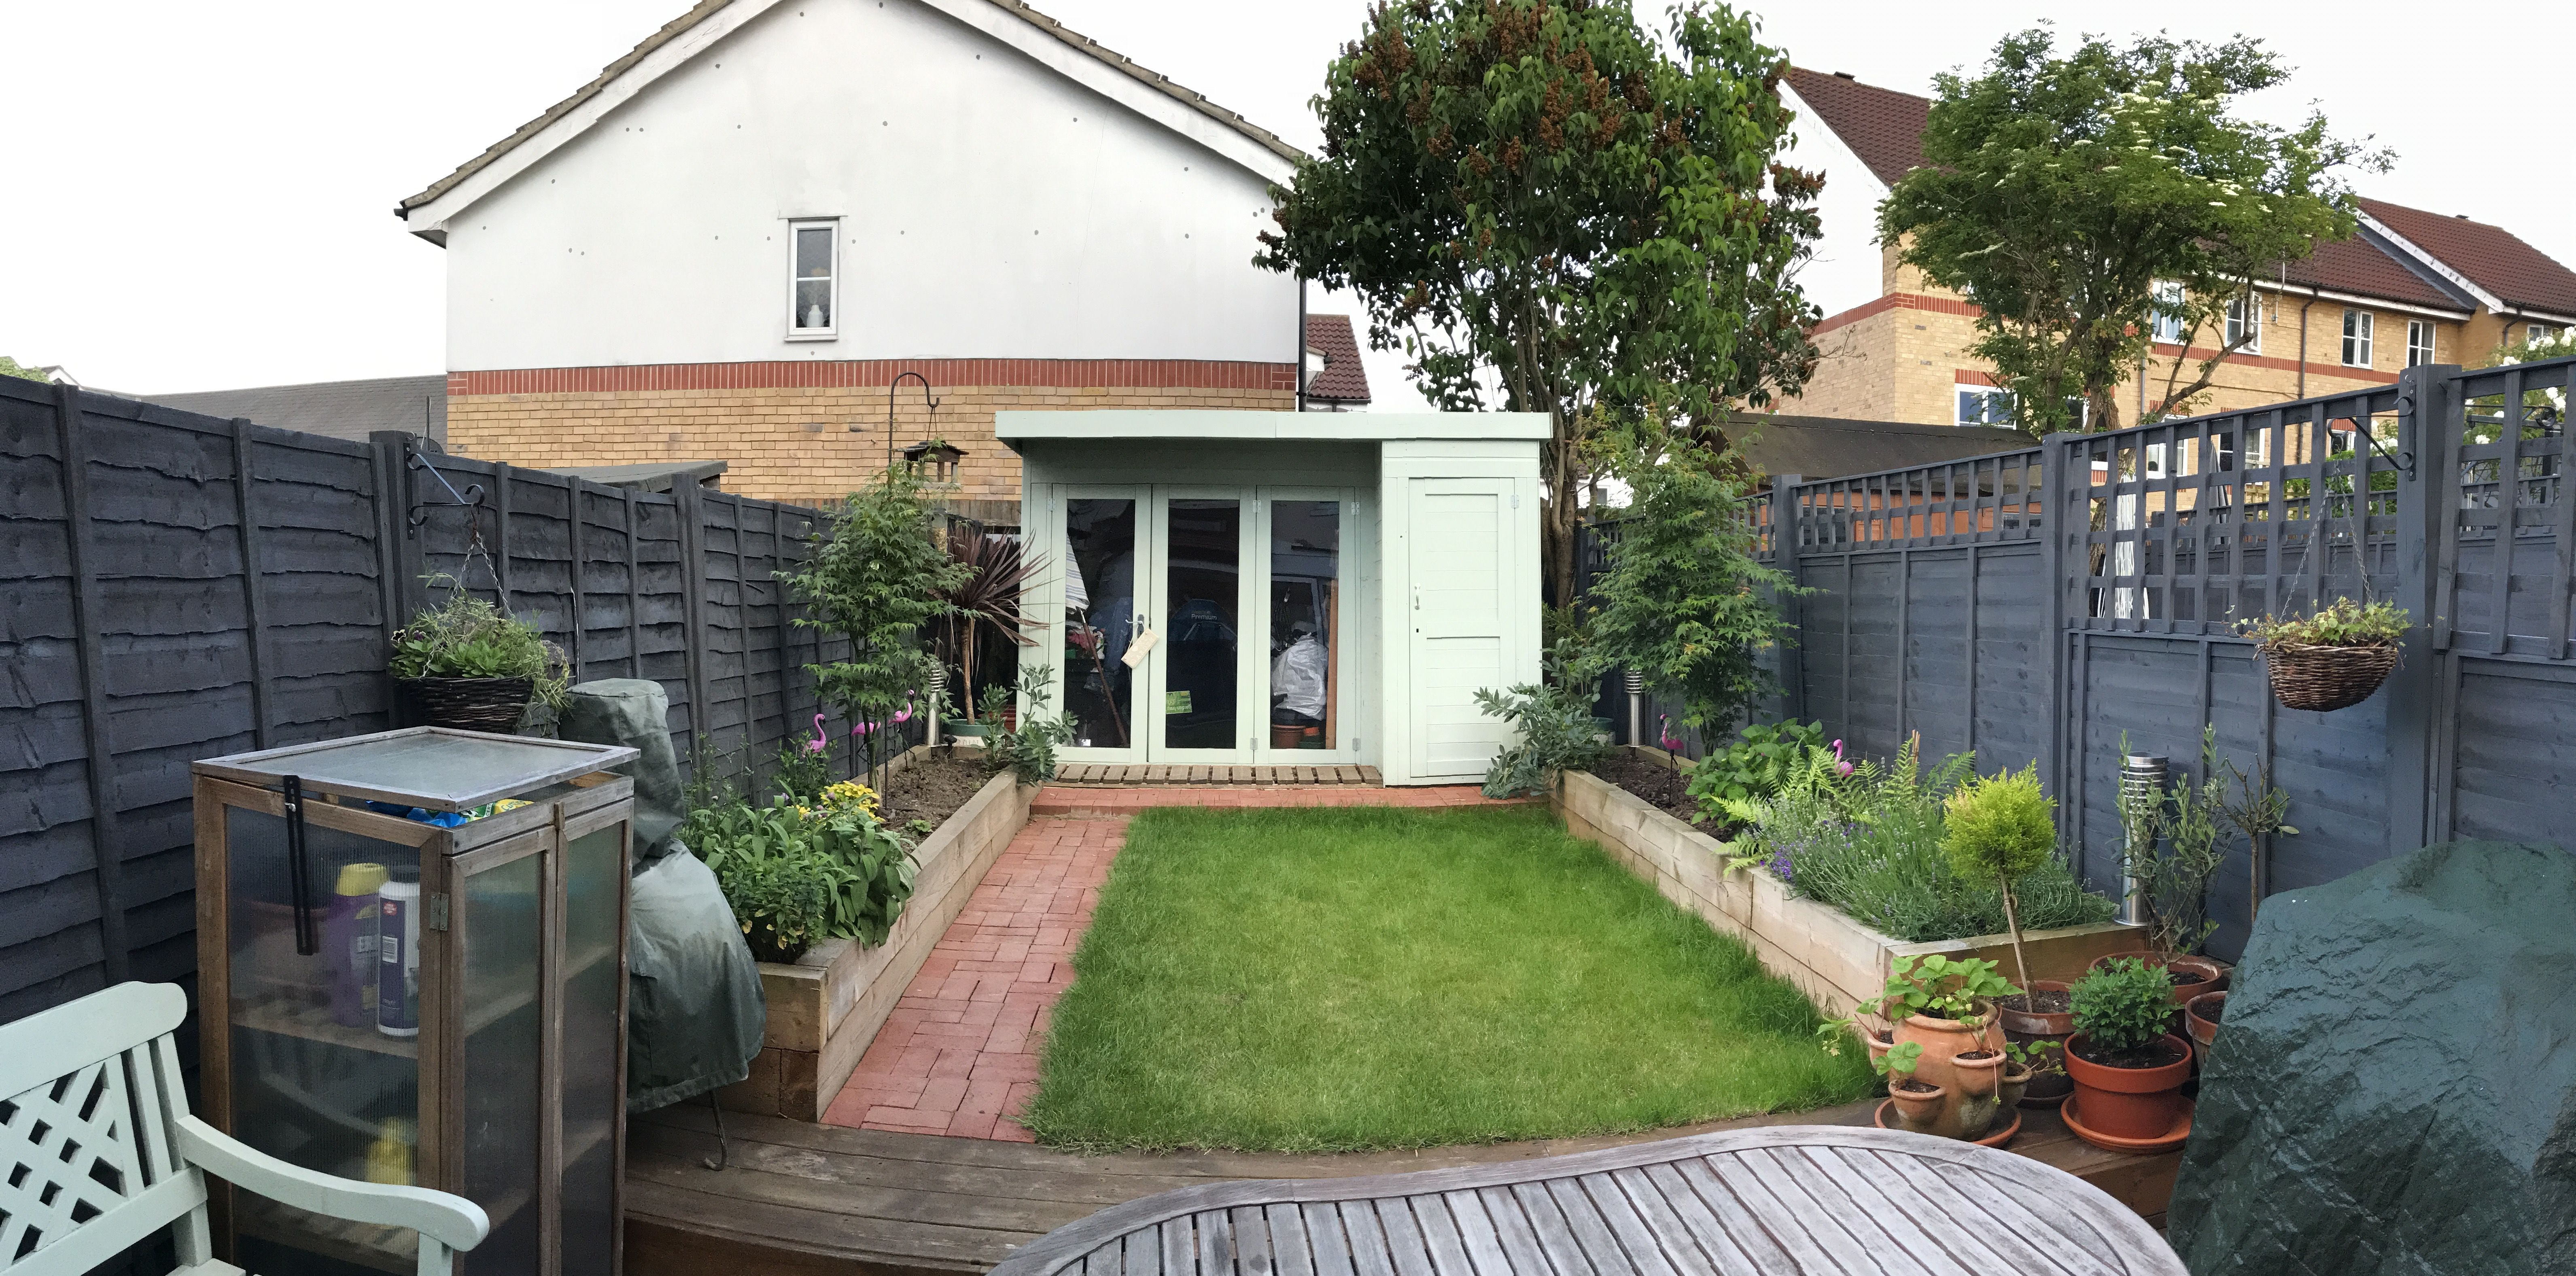 My Newly Painted Garden Fence In Cuprinol Silver Copse And Summer House In Cuprinol Fresh Rosemary Garden Fence Cheap Garden Fencing Garden Front Of House